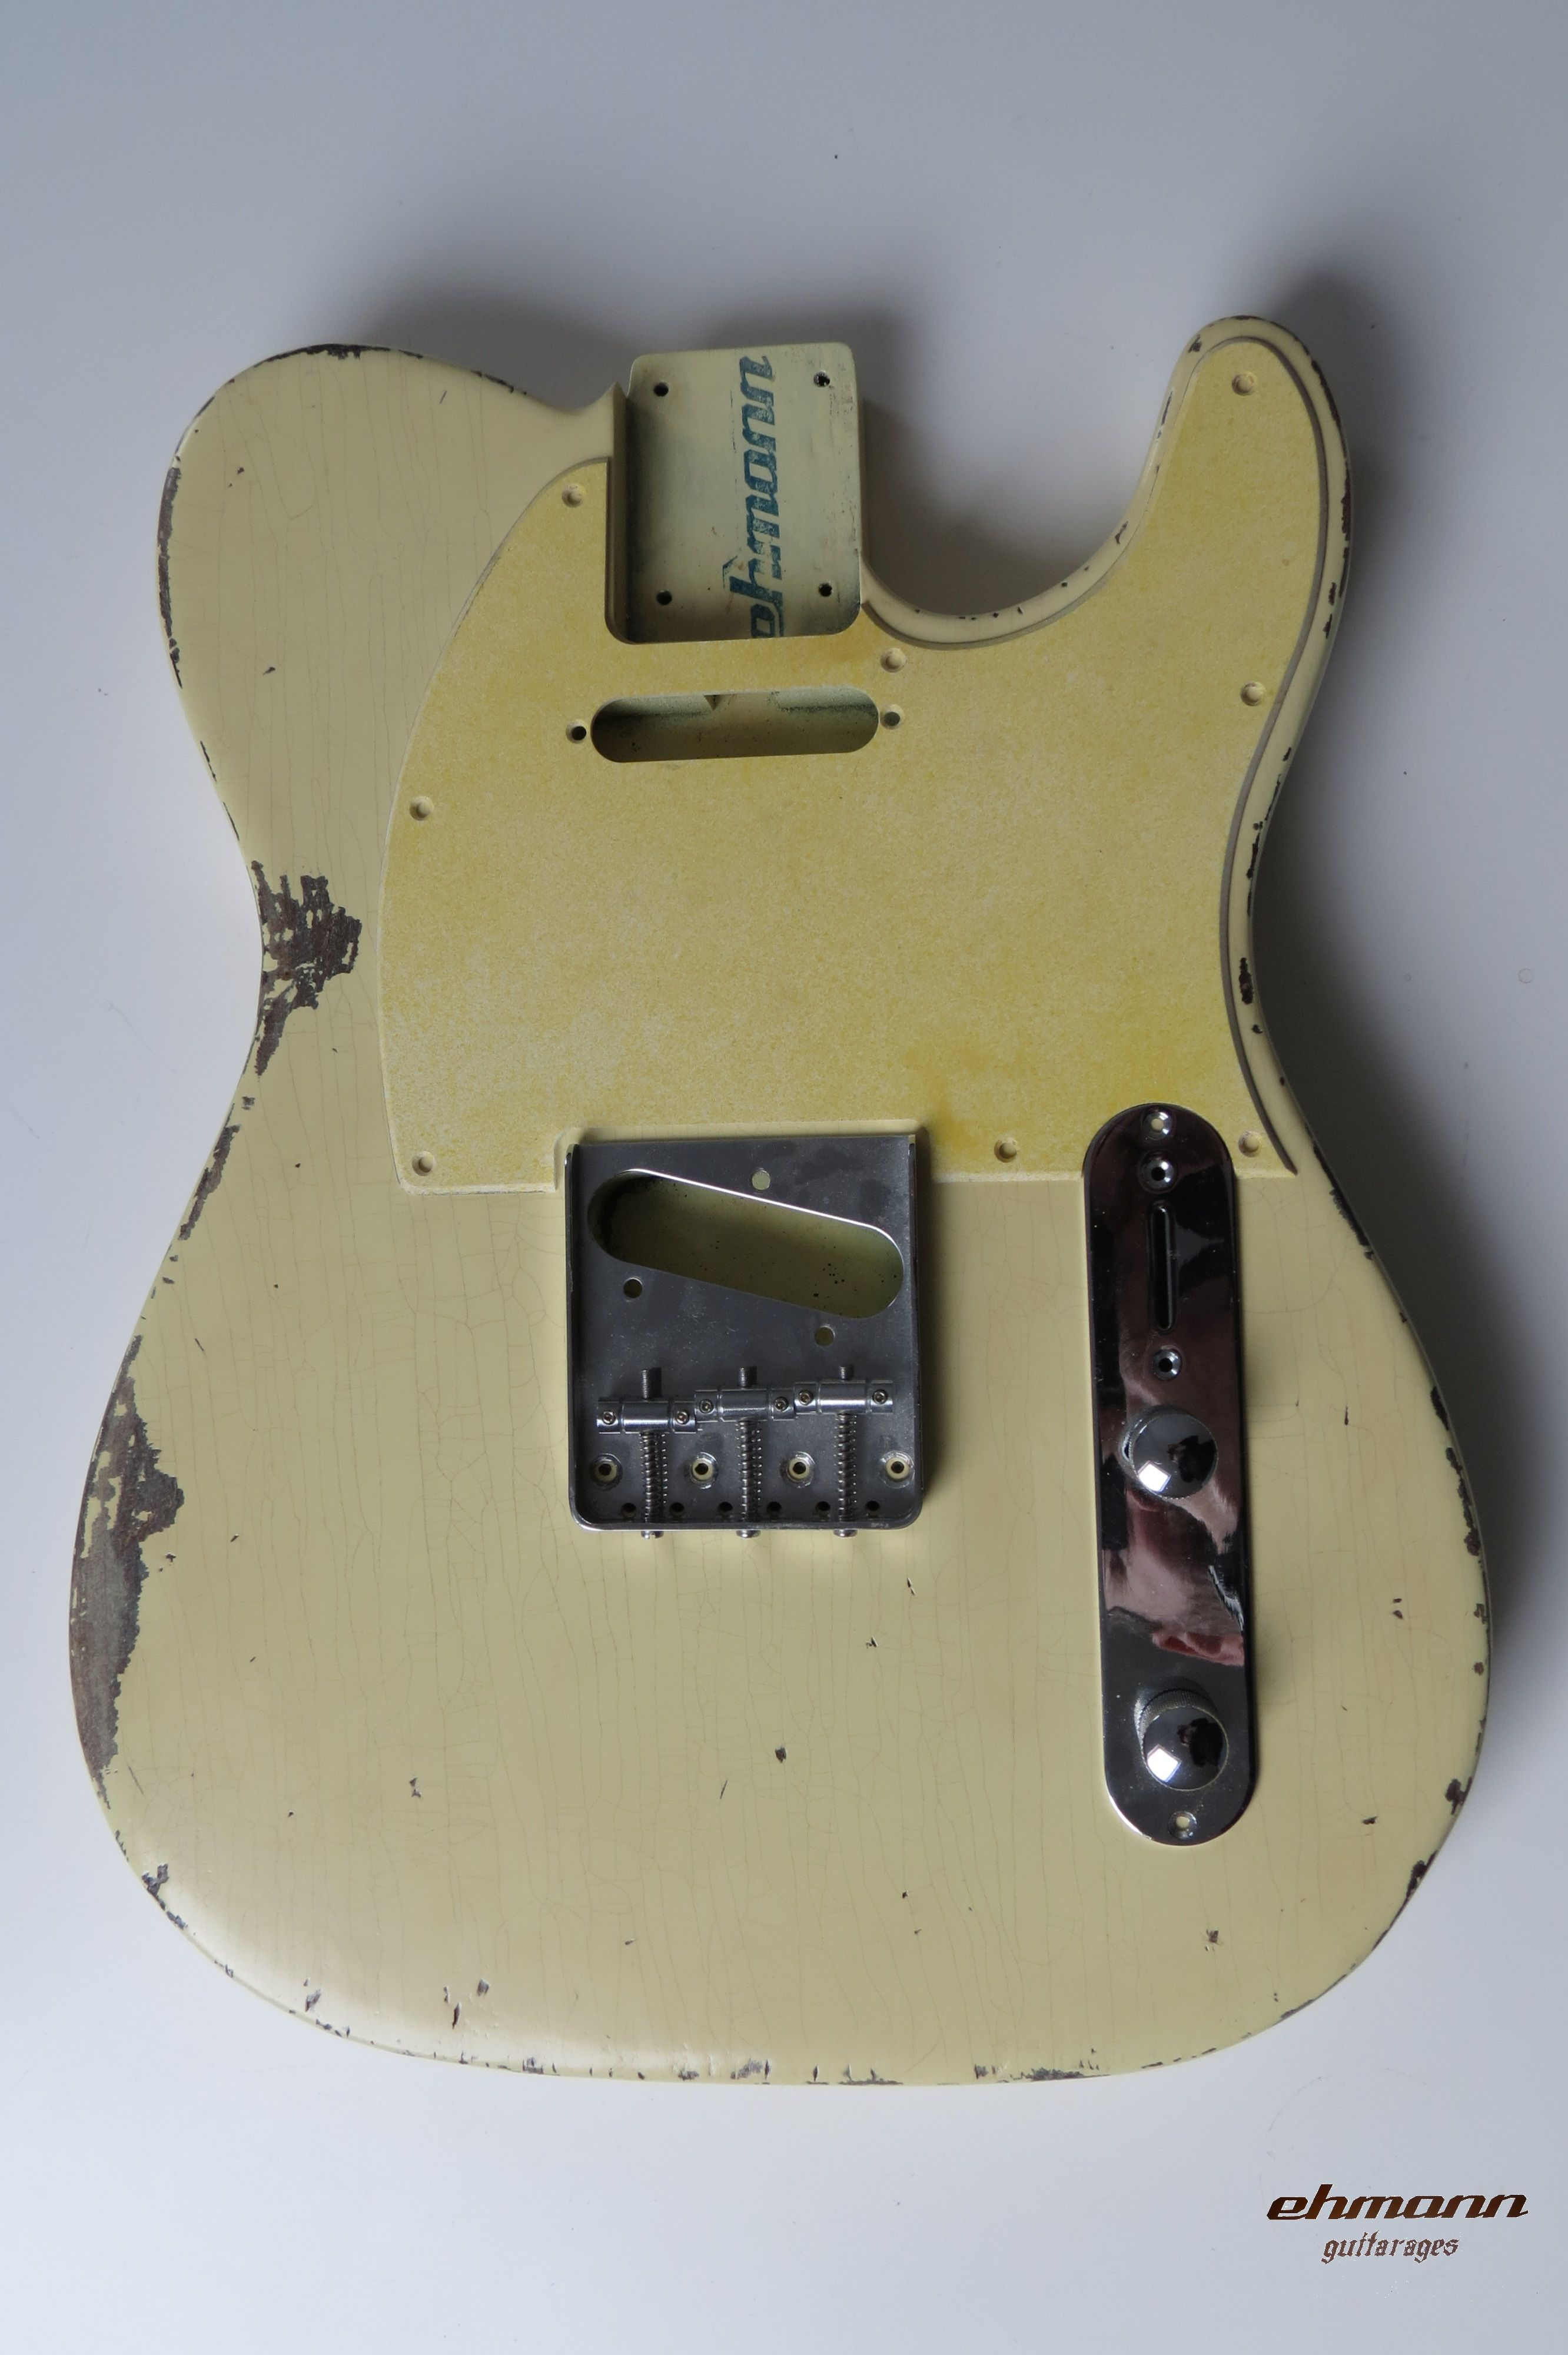 Ehmann Guitarages Aging Guitar Vintage Custom Gitarre Aged Body